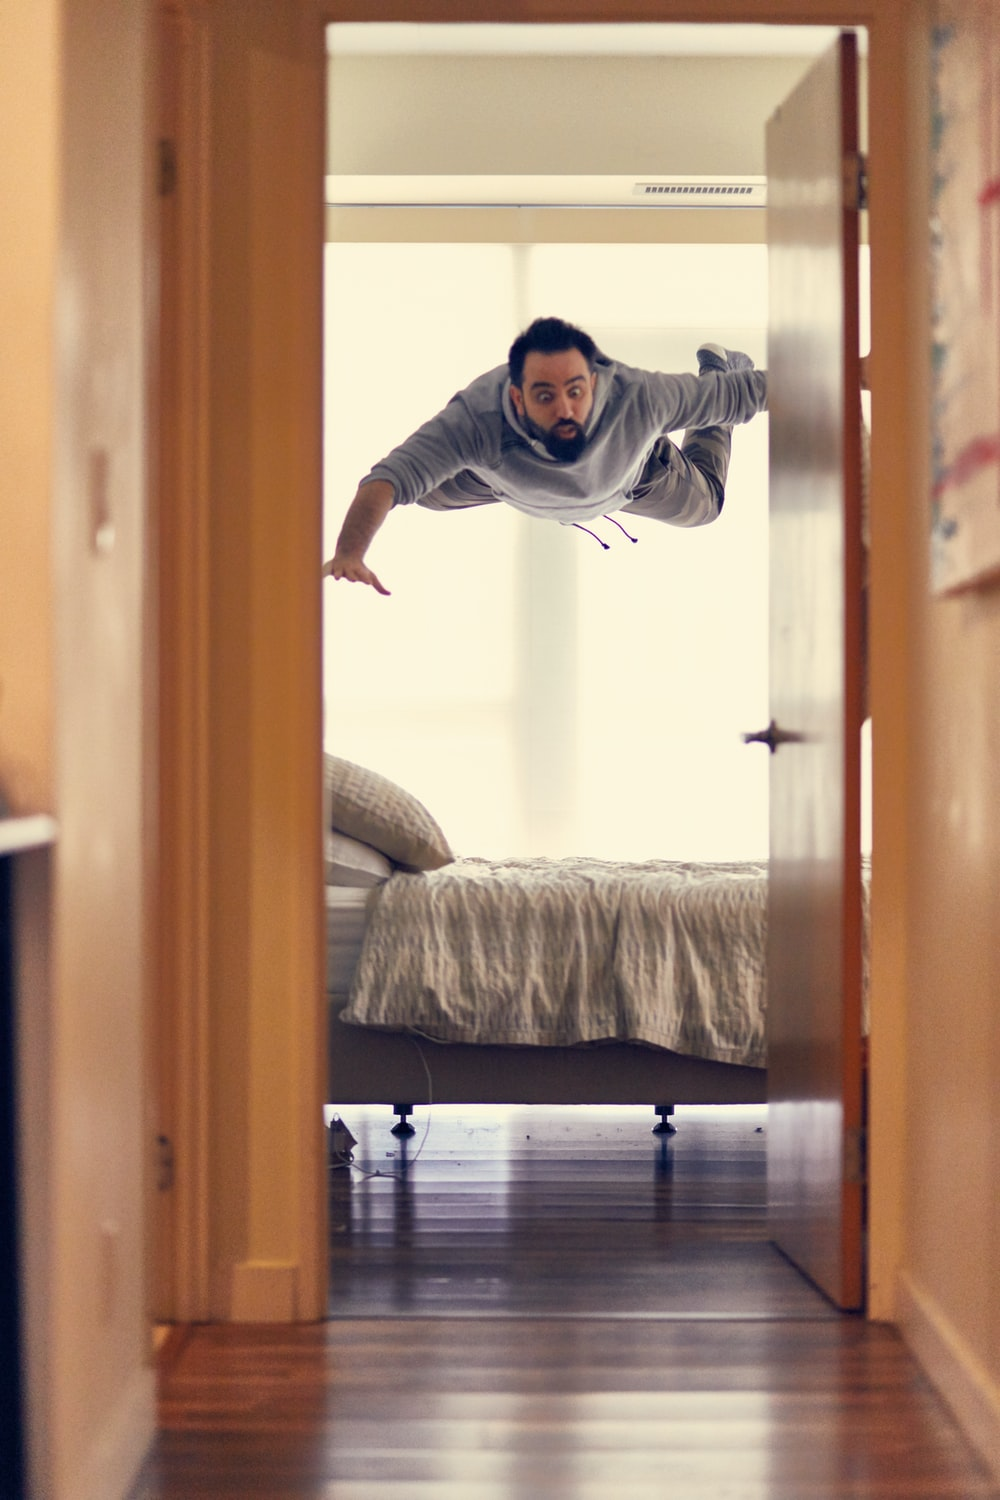 man falling from ceiling on bed